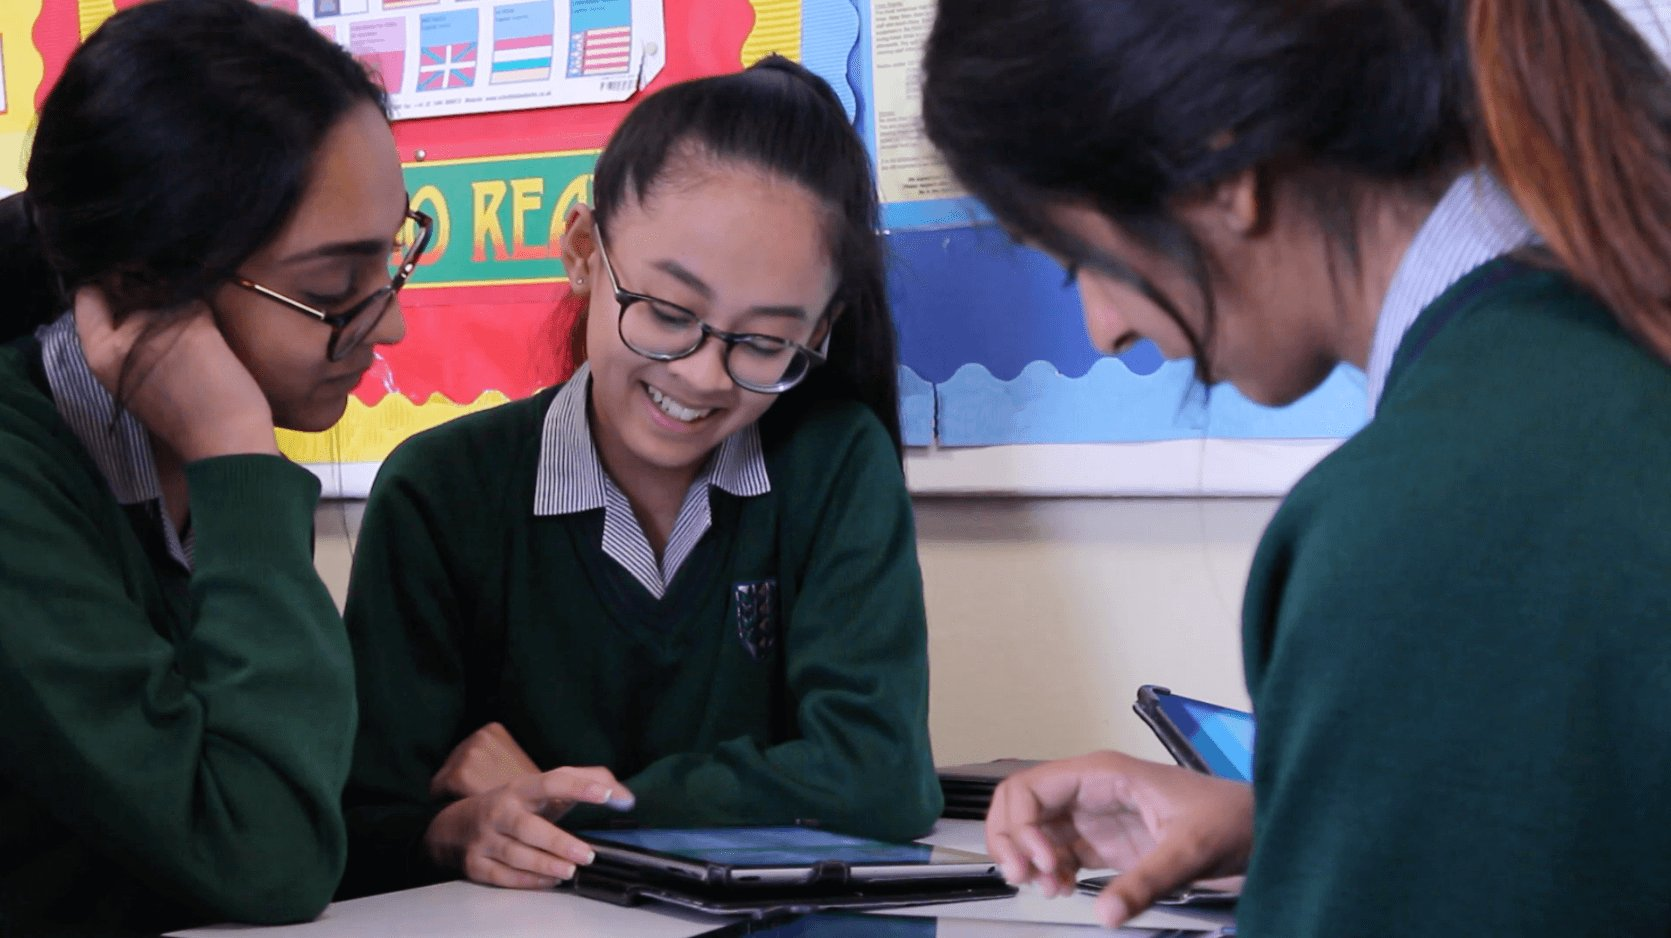 Motivated EAL learners using FlashAcademy